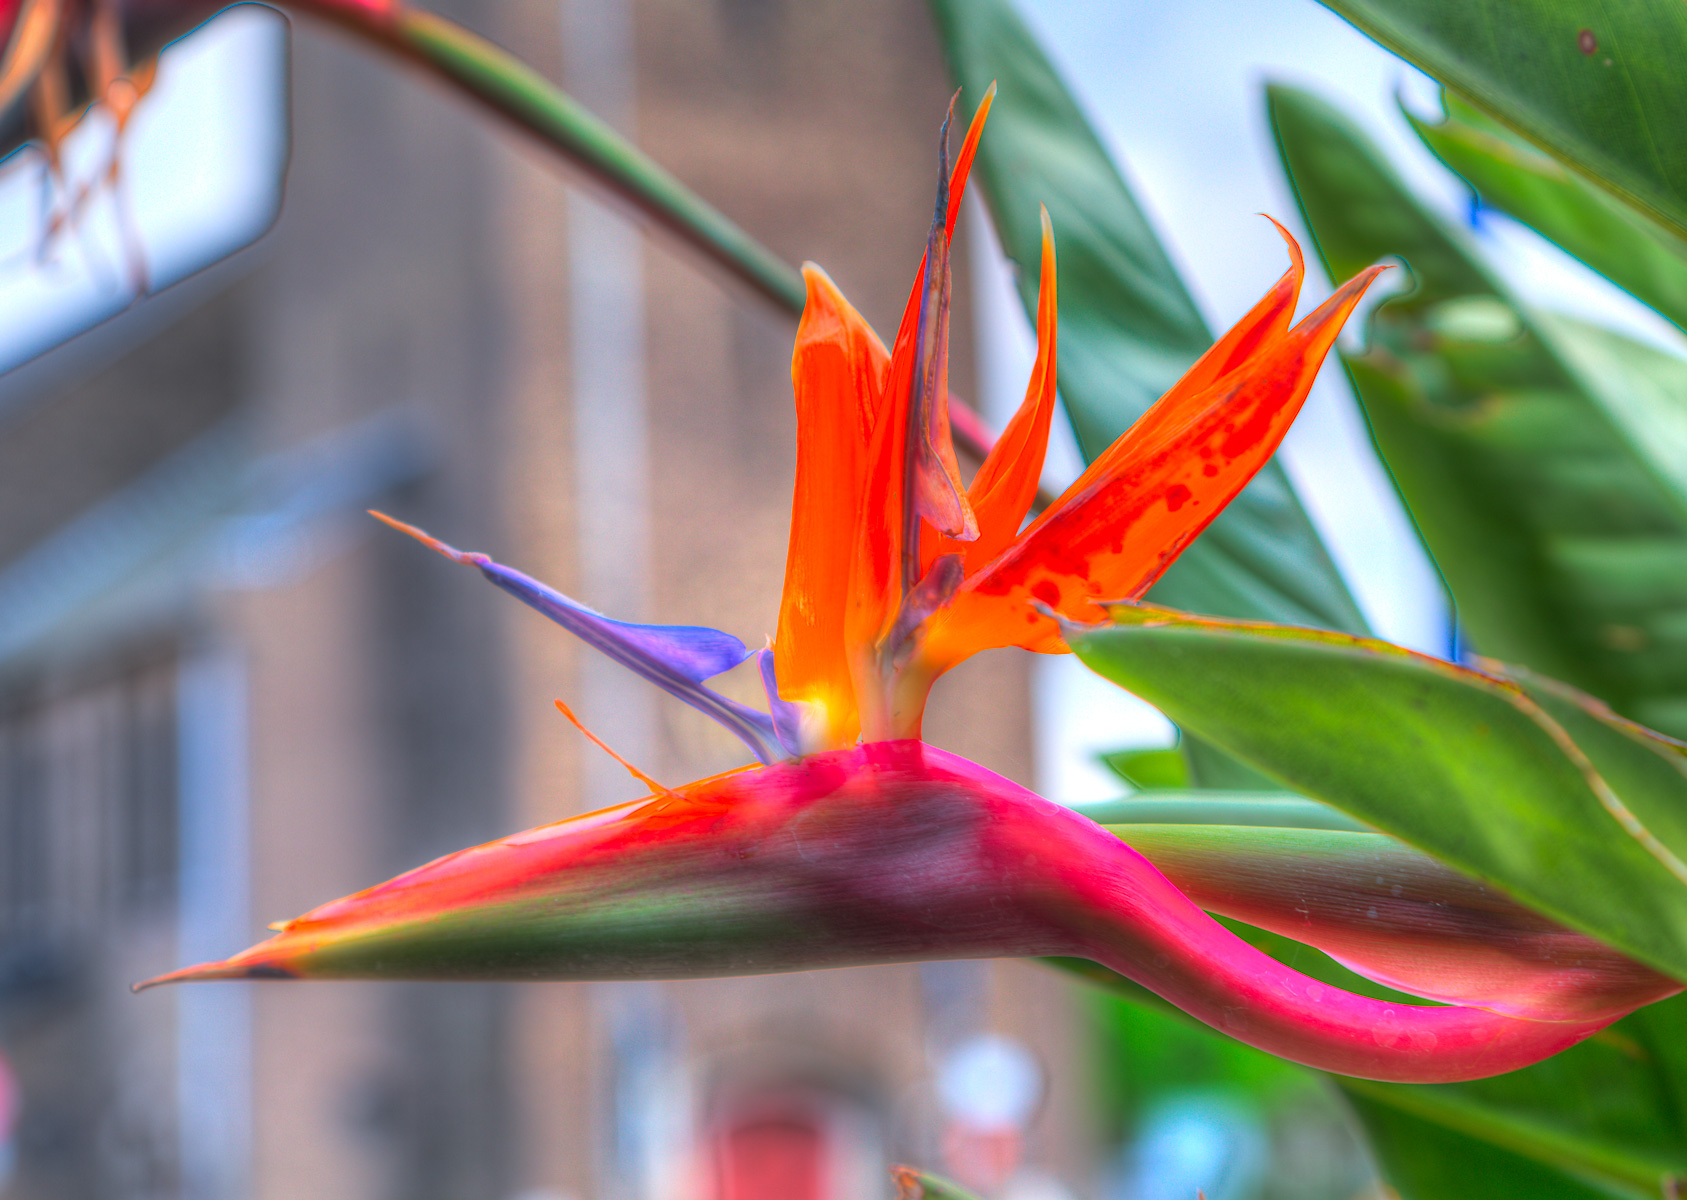 bird-of-paradise_57A1758_59_60_tonemapped